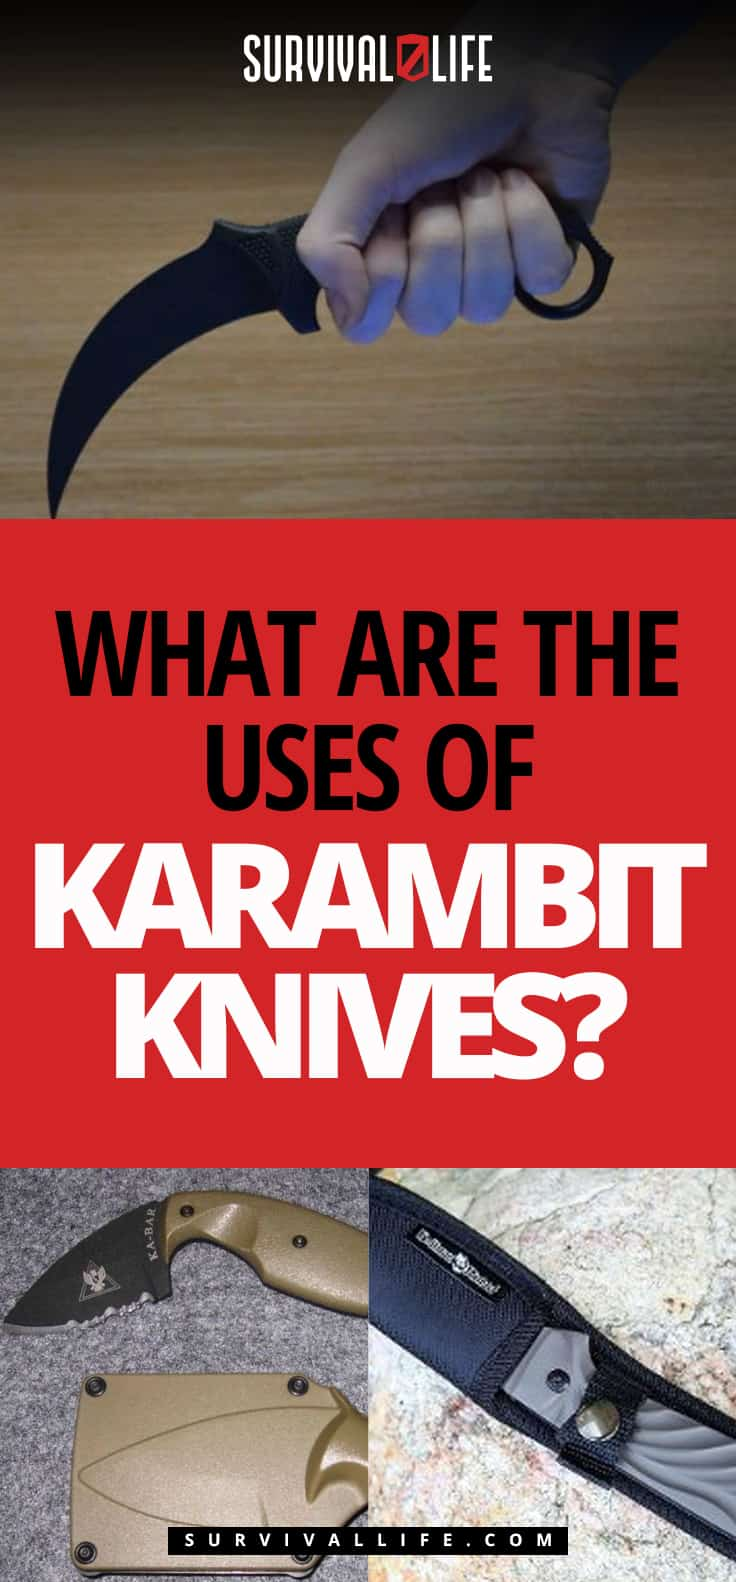 What Are The Uses Of Karambit Knives? | https://survivallife.com/karambit-knives-uses/